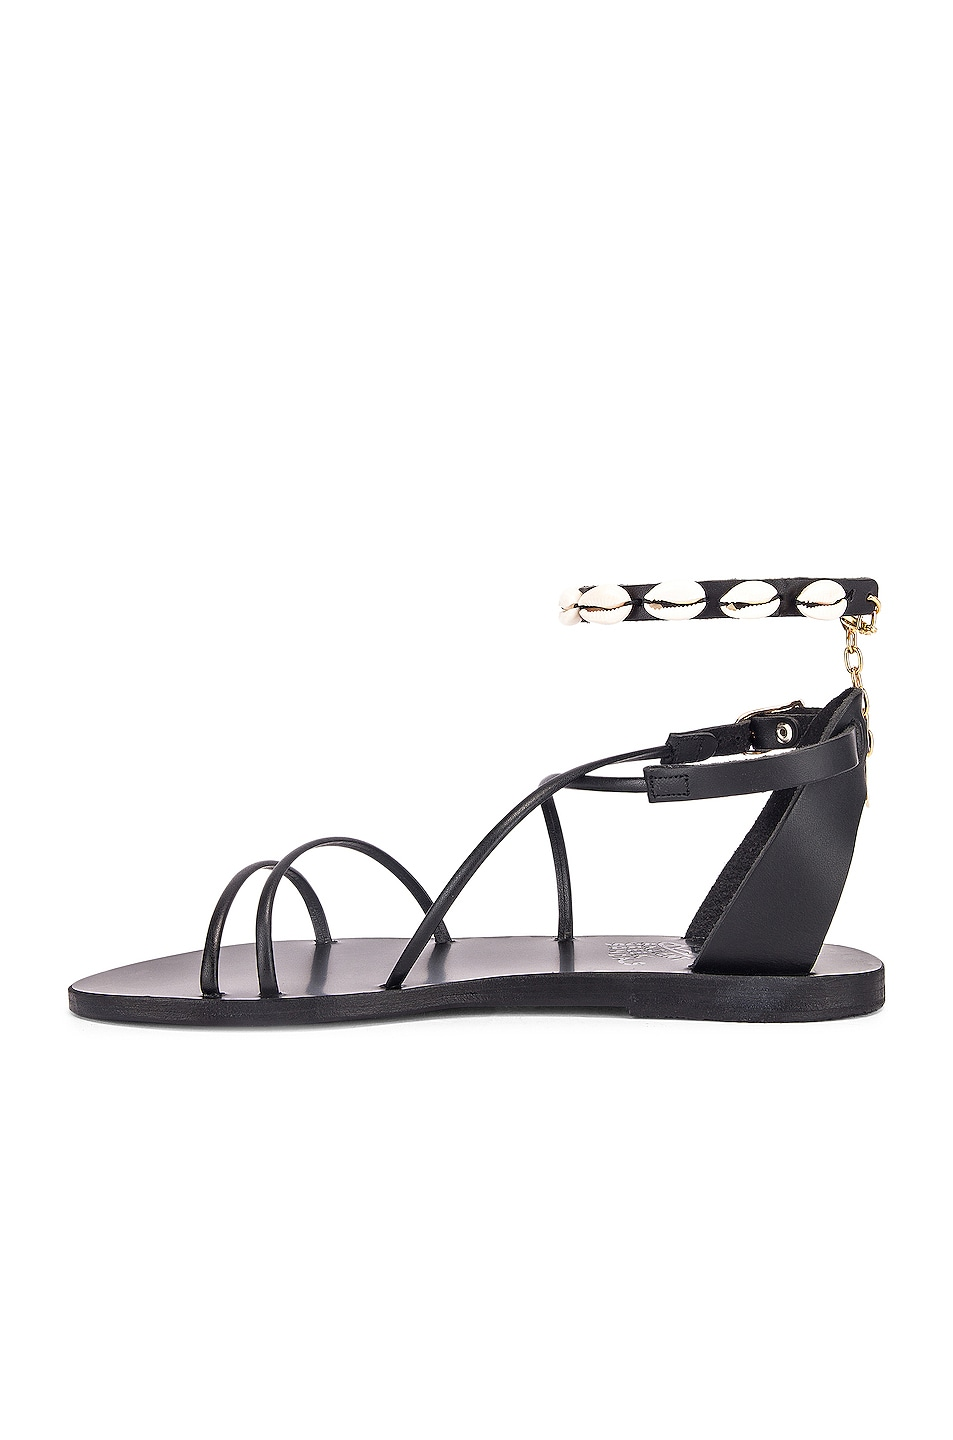 Image 5 of Ancient Greek Sandals Meloivia with Shells Sandals in Black